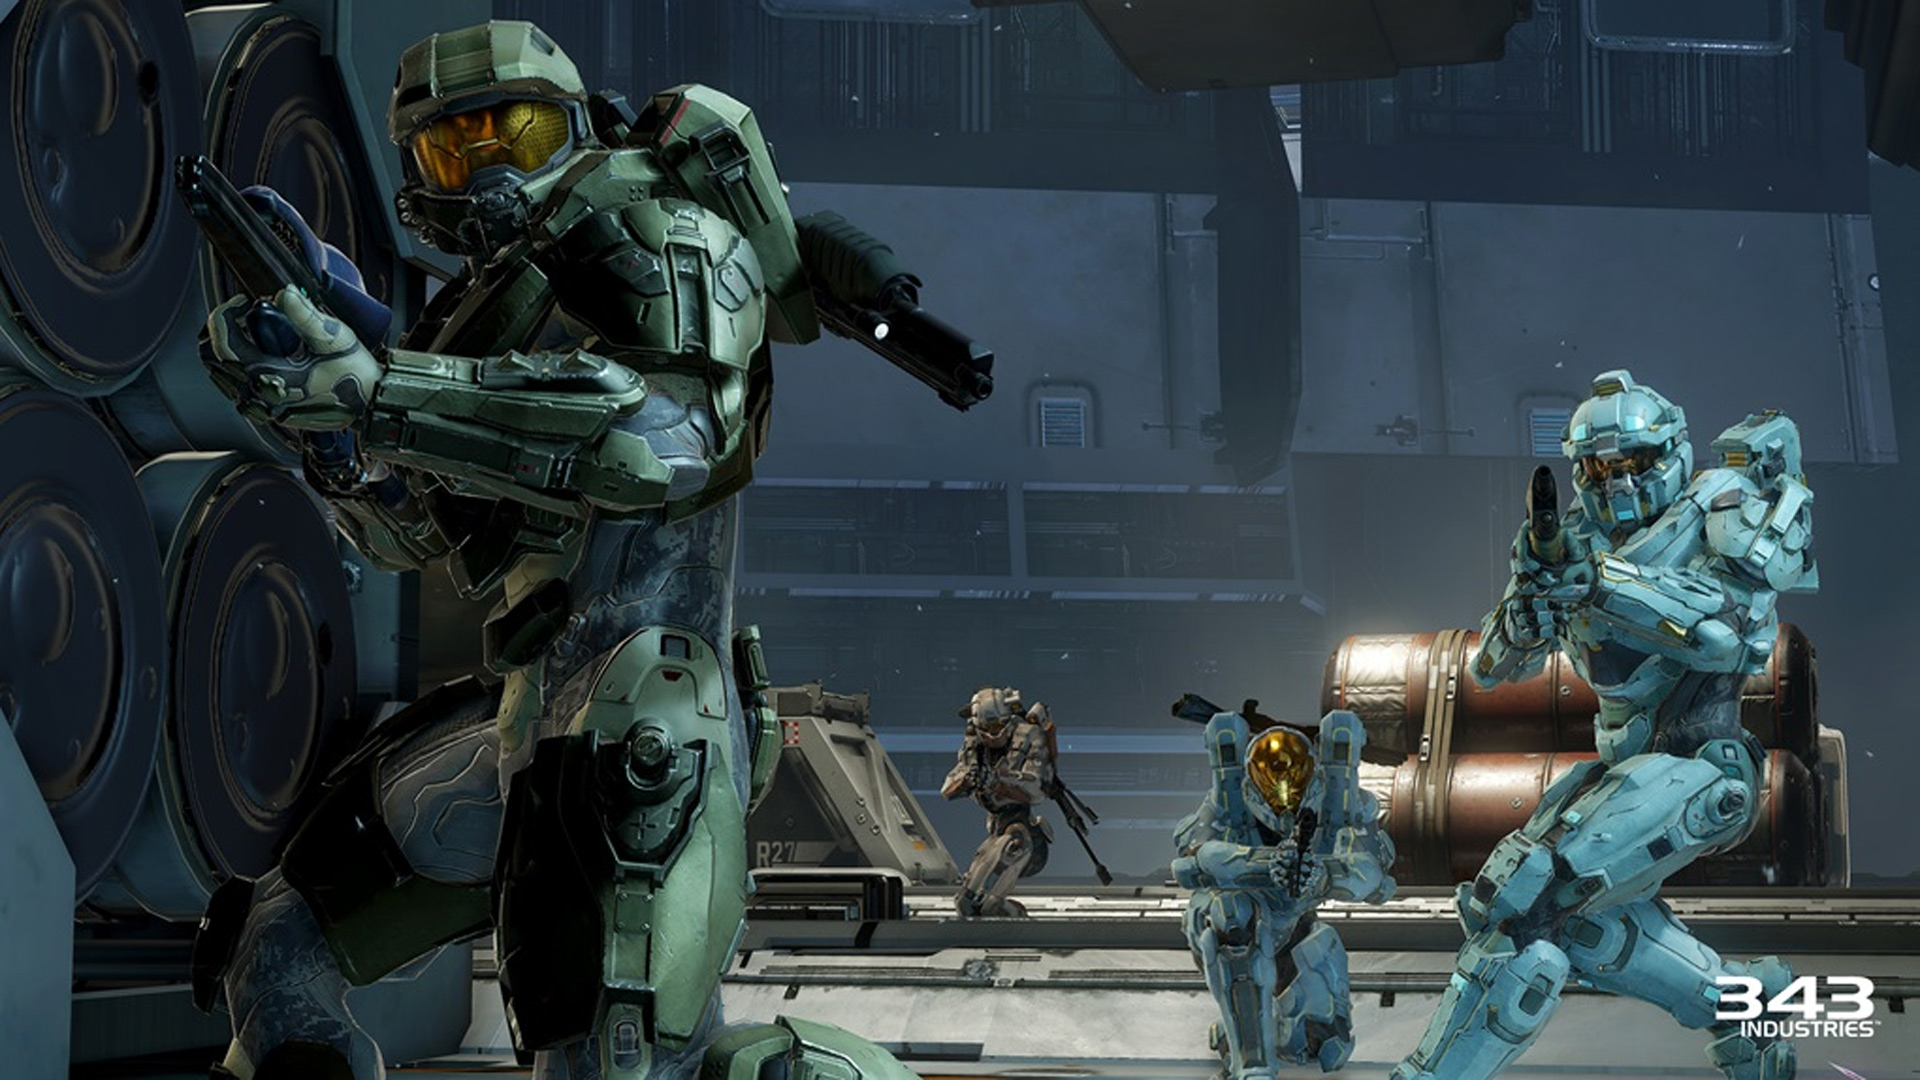 Halo 6 E3 2018 Screenshot